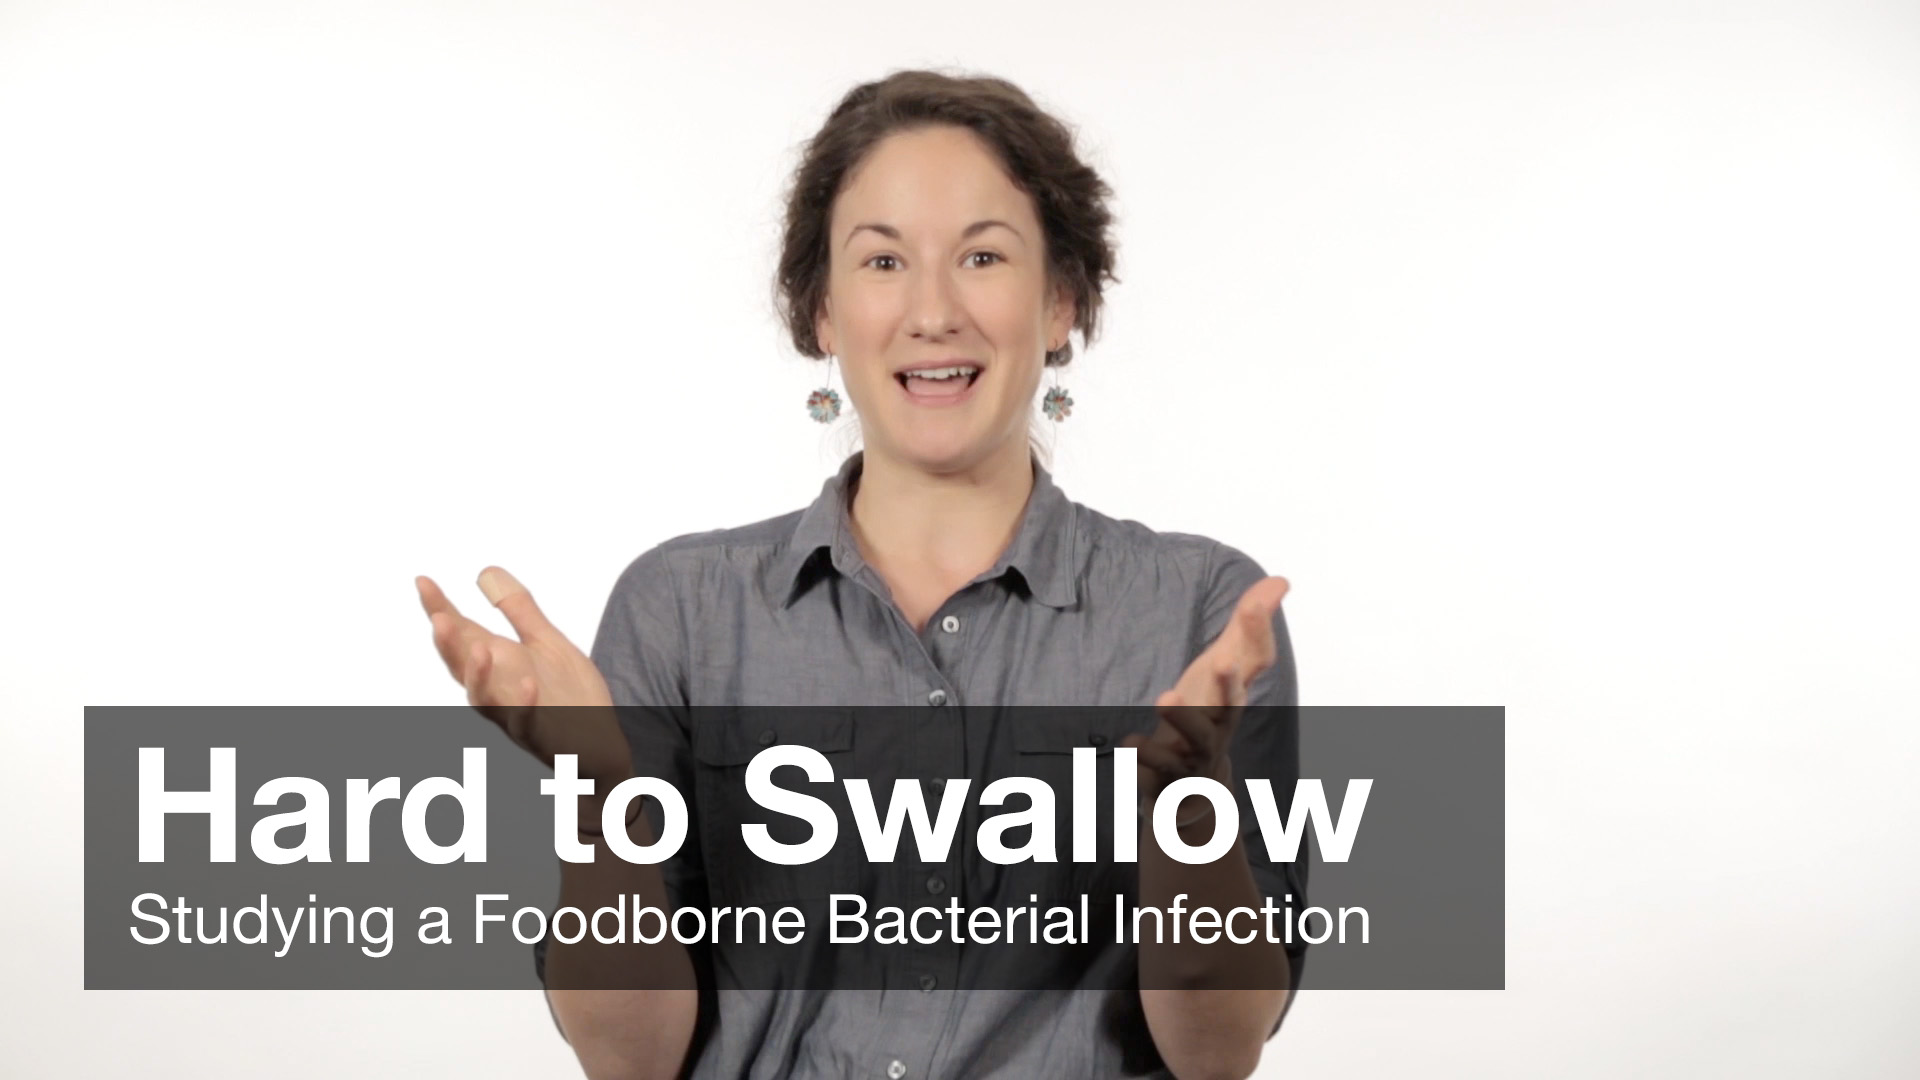 Hard to Swallow - Studying a Foodborne Bacterial Infection